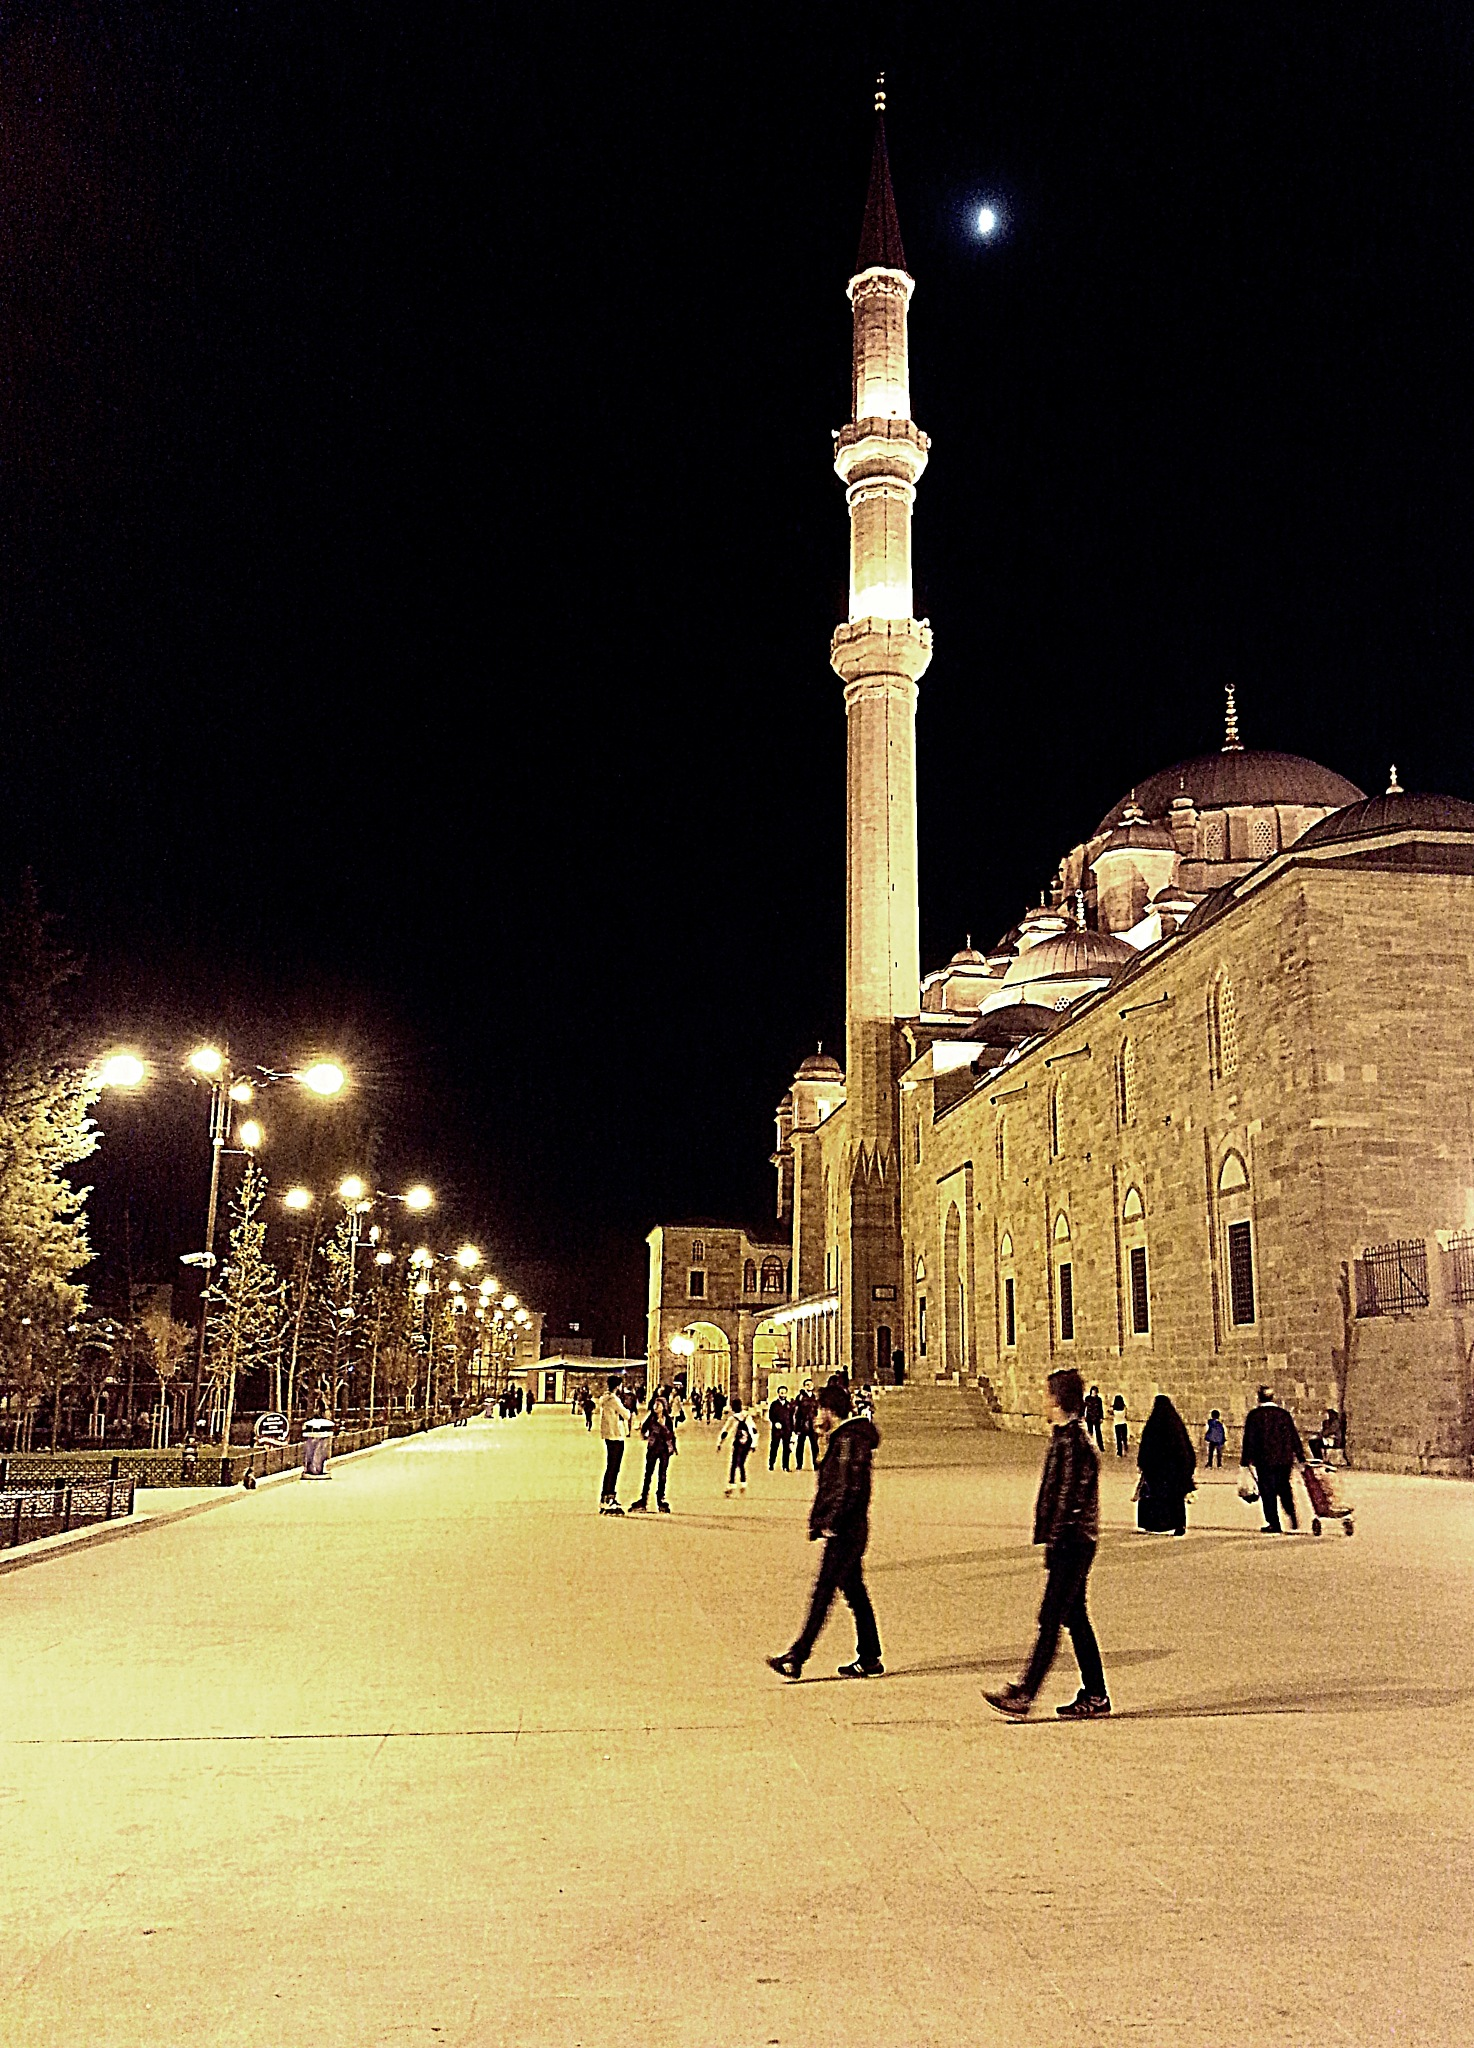 Fatih Mosque by Demet Alper